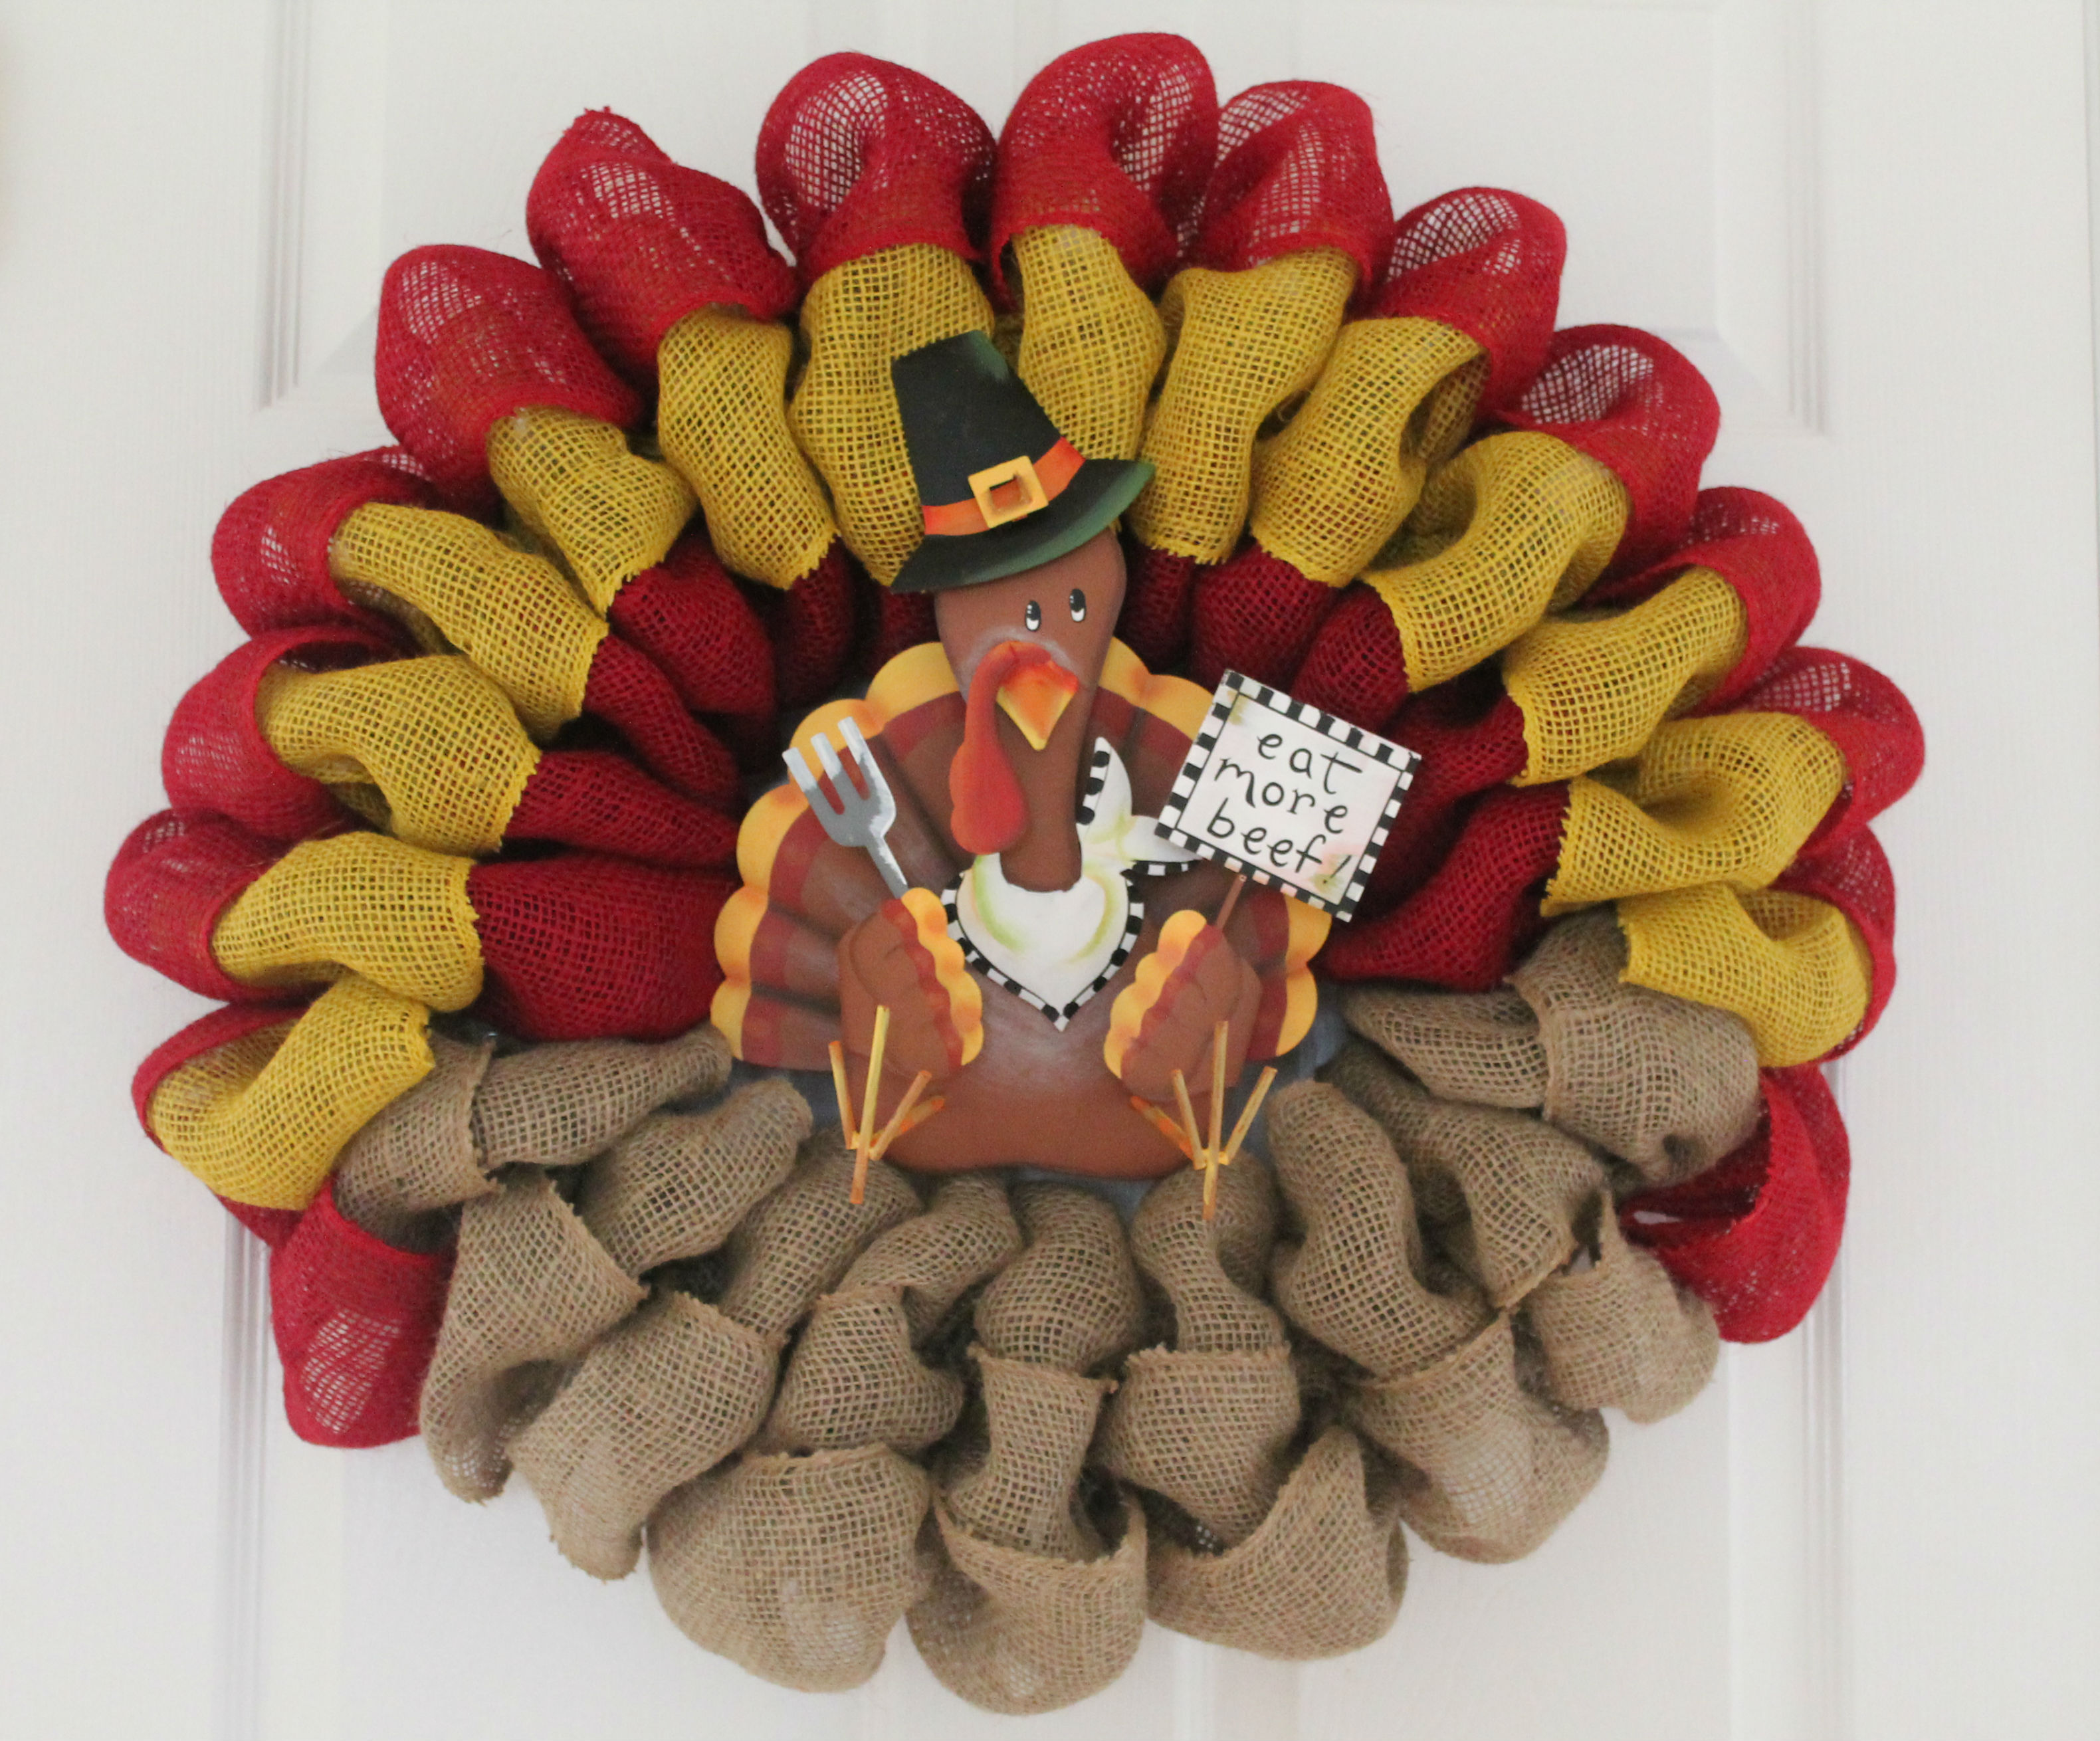 Decorating Ideas > Re Pretty Christmas Wreaths  Page 3  Blogs & Forums ~ 115403_Qvc Thanksgiving Decorations